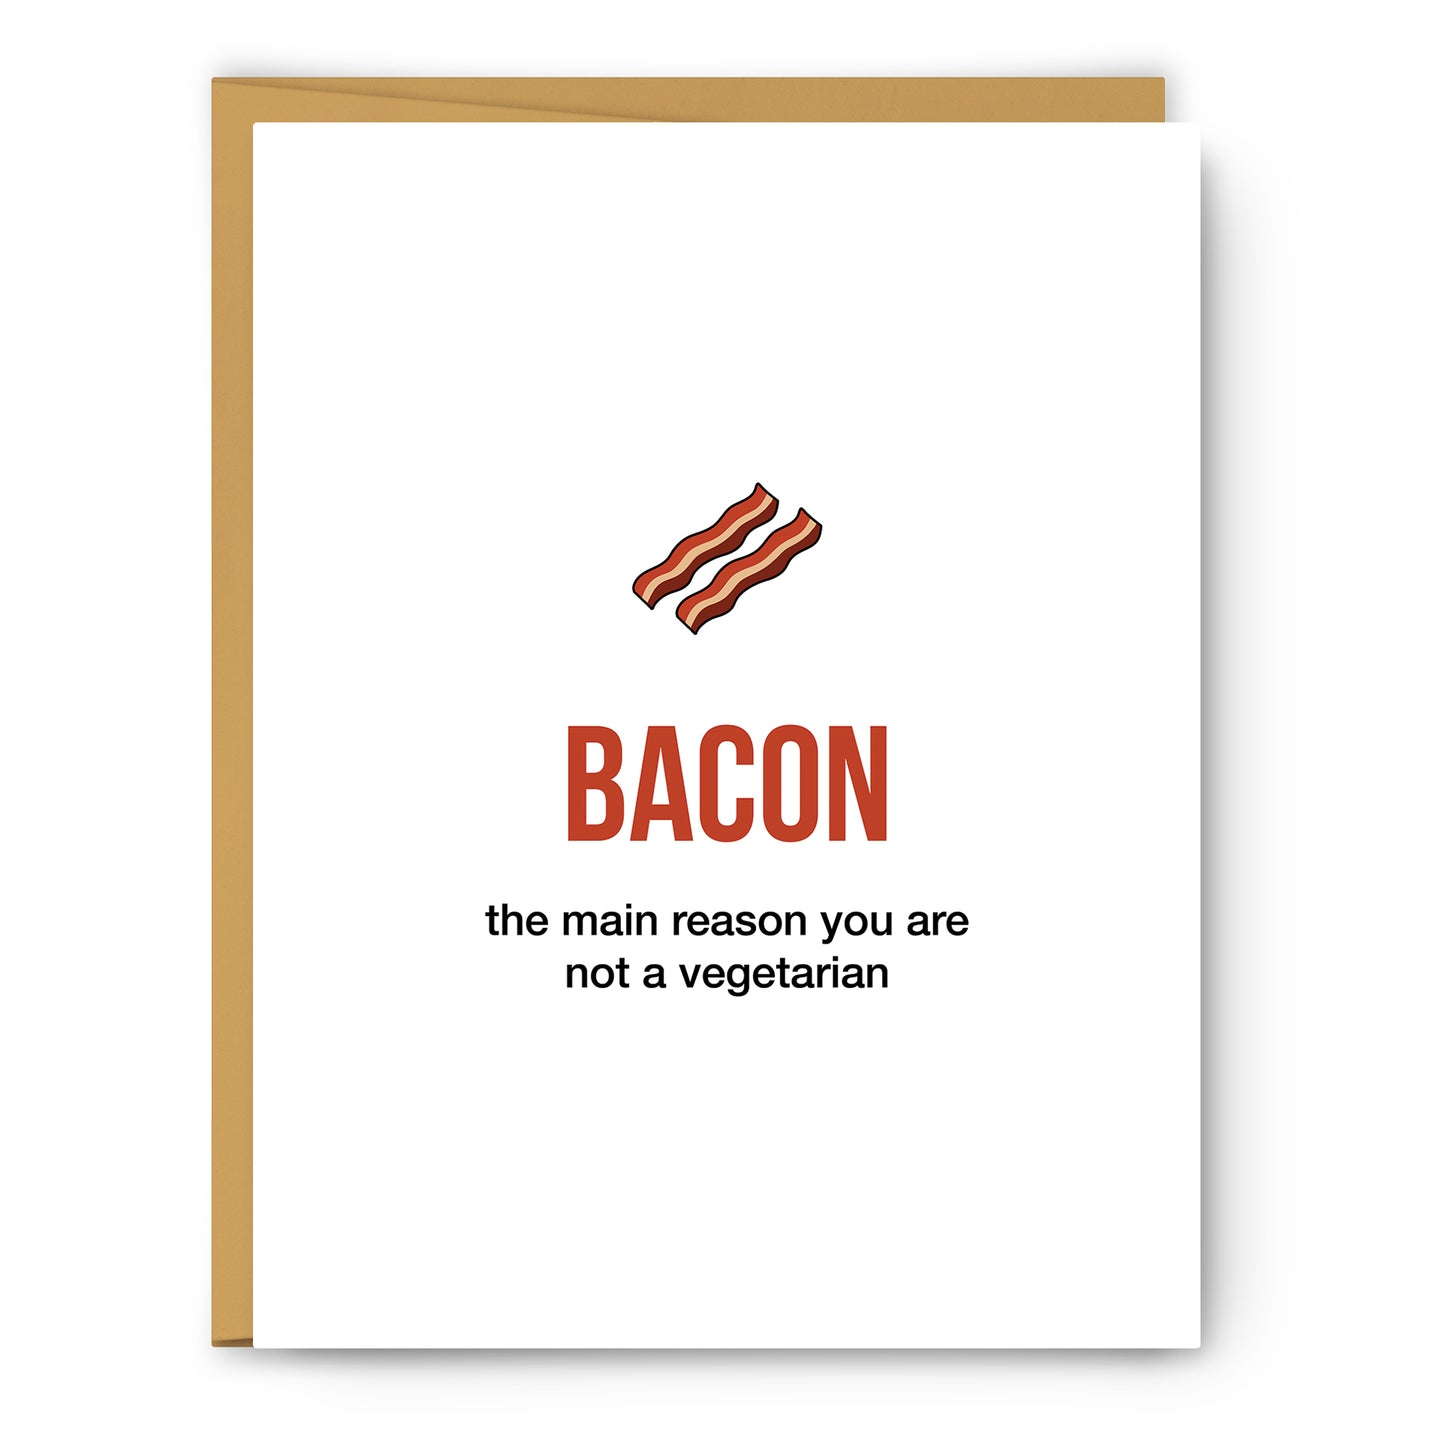 Bacon Definition Illustration - Unframed Art Print Poster Or Greeting Card